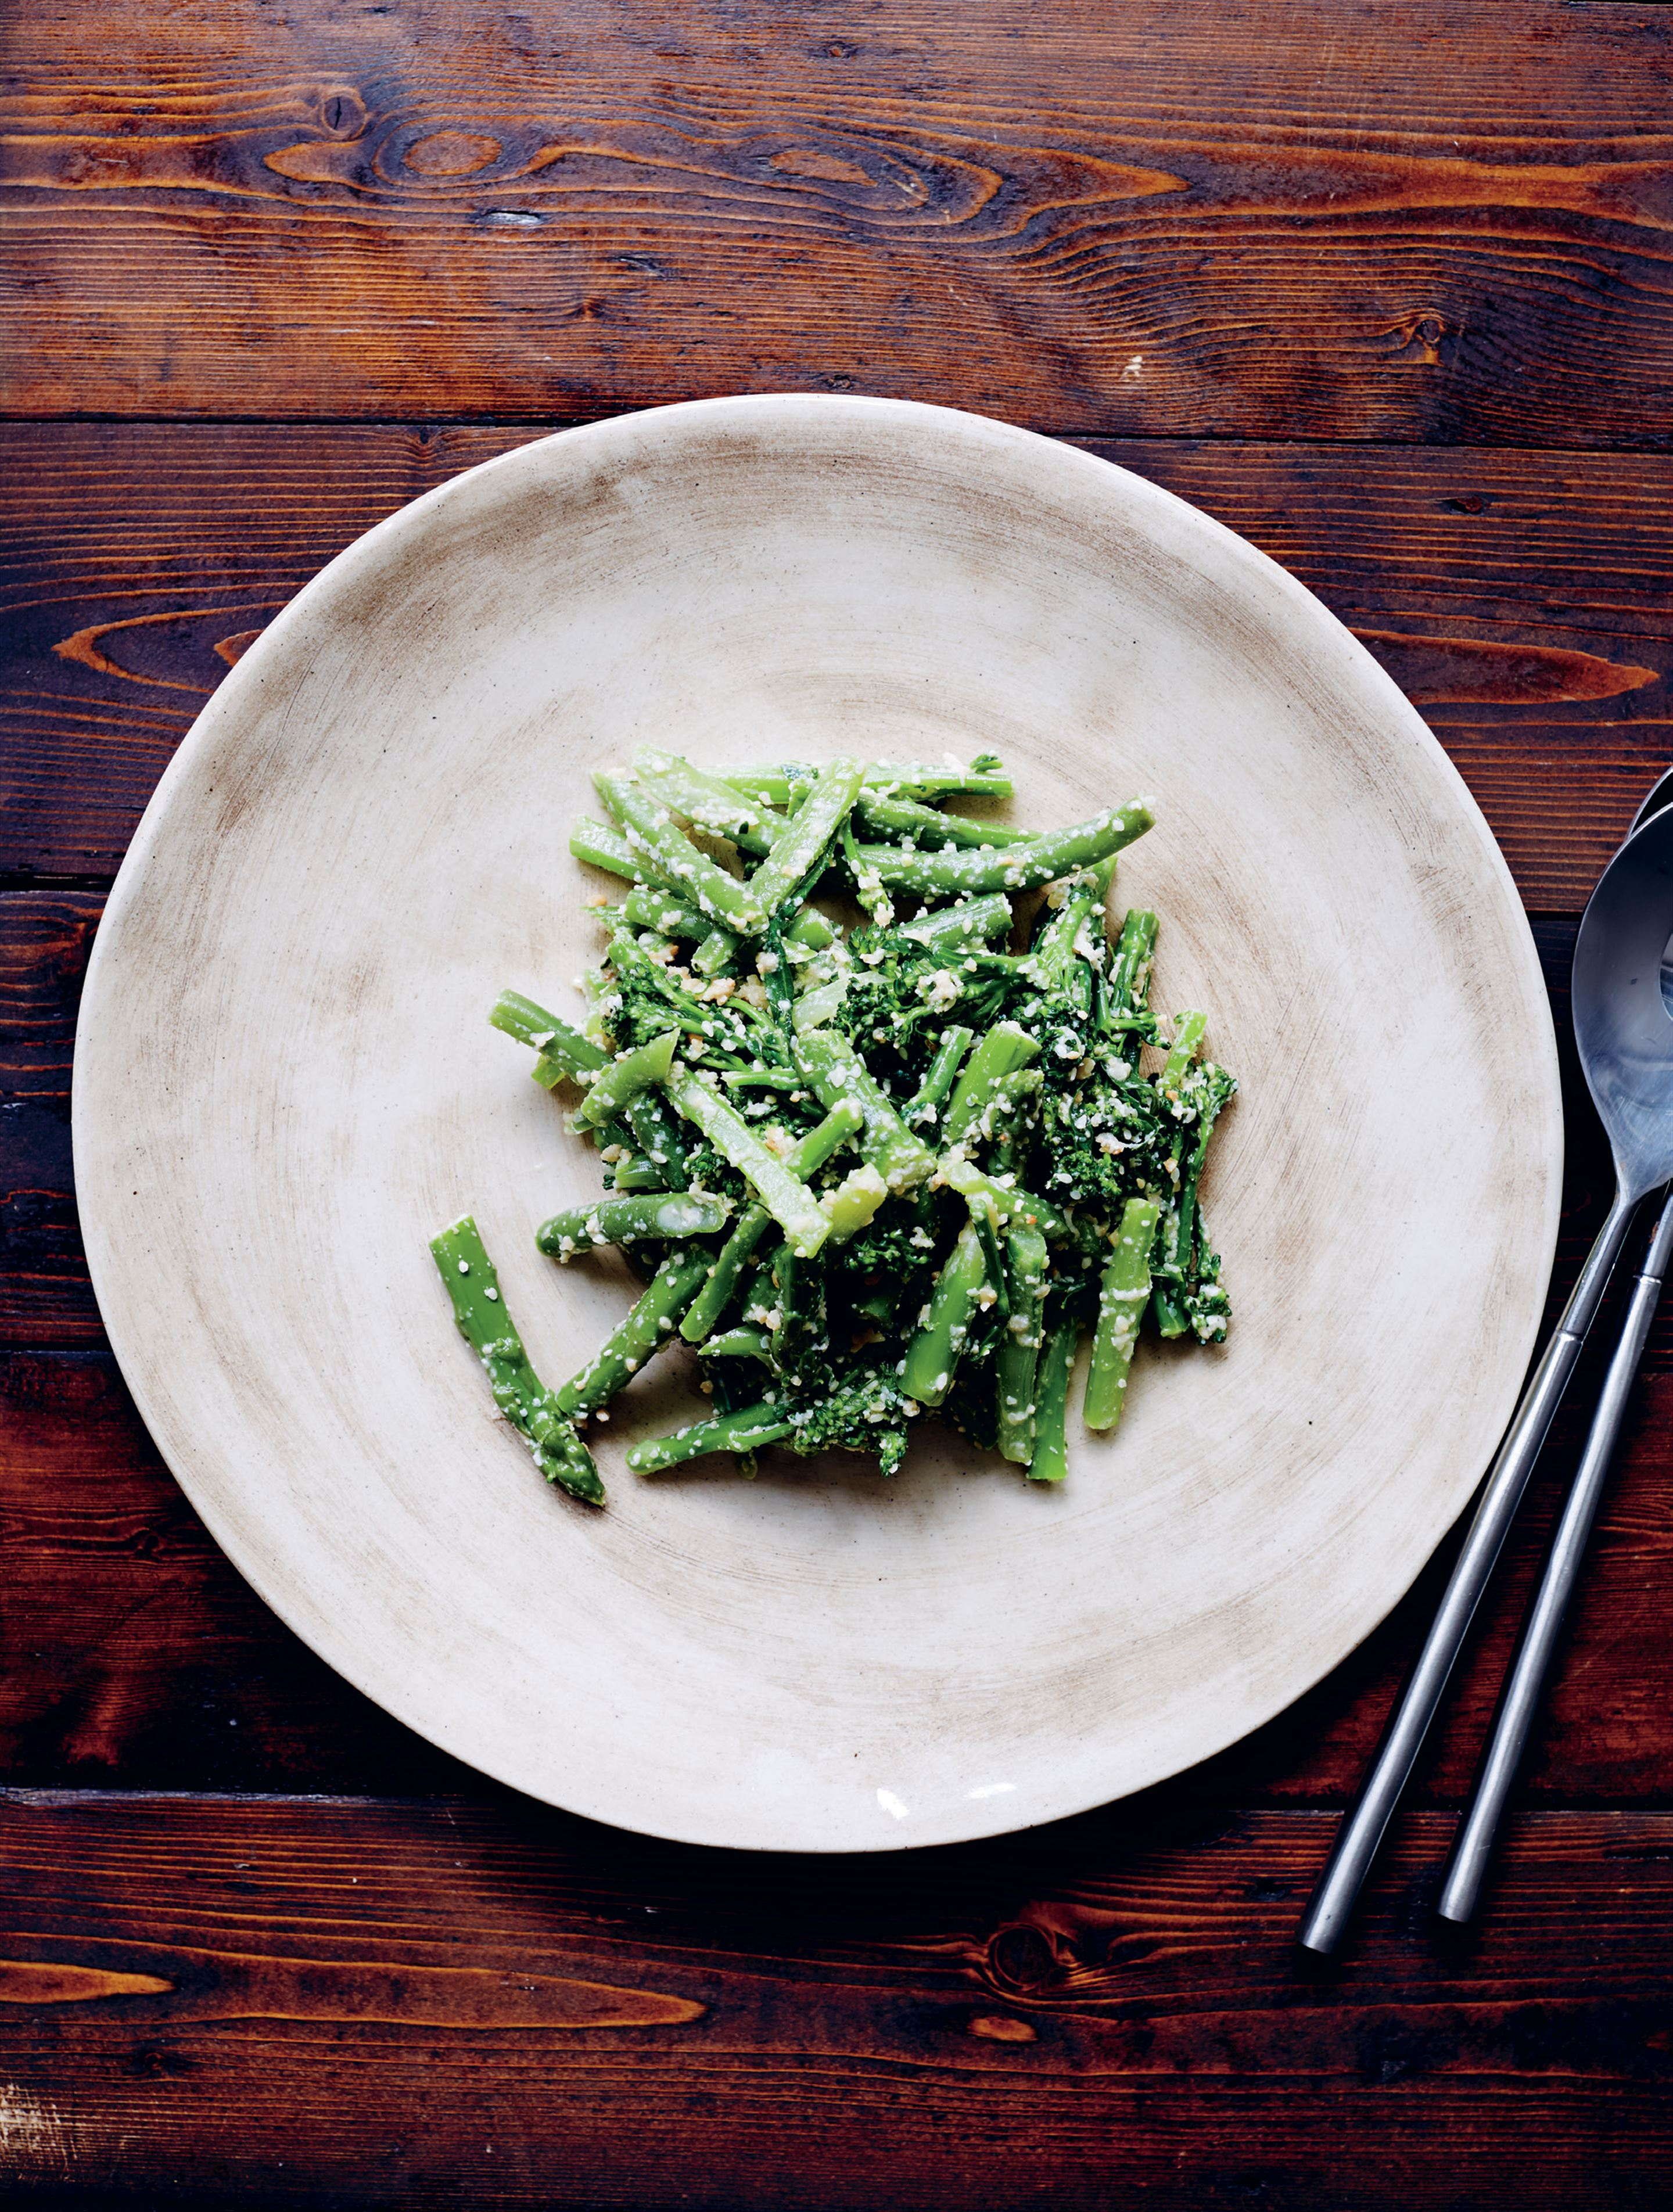 Salad of asparagus, broccolini, beans & sesame ginger dressing